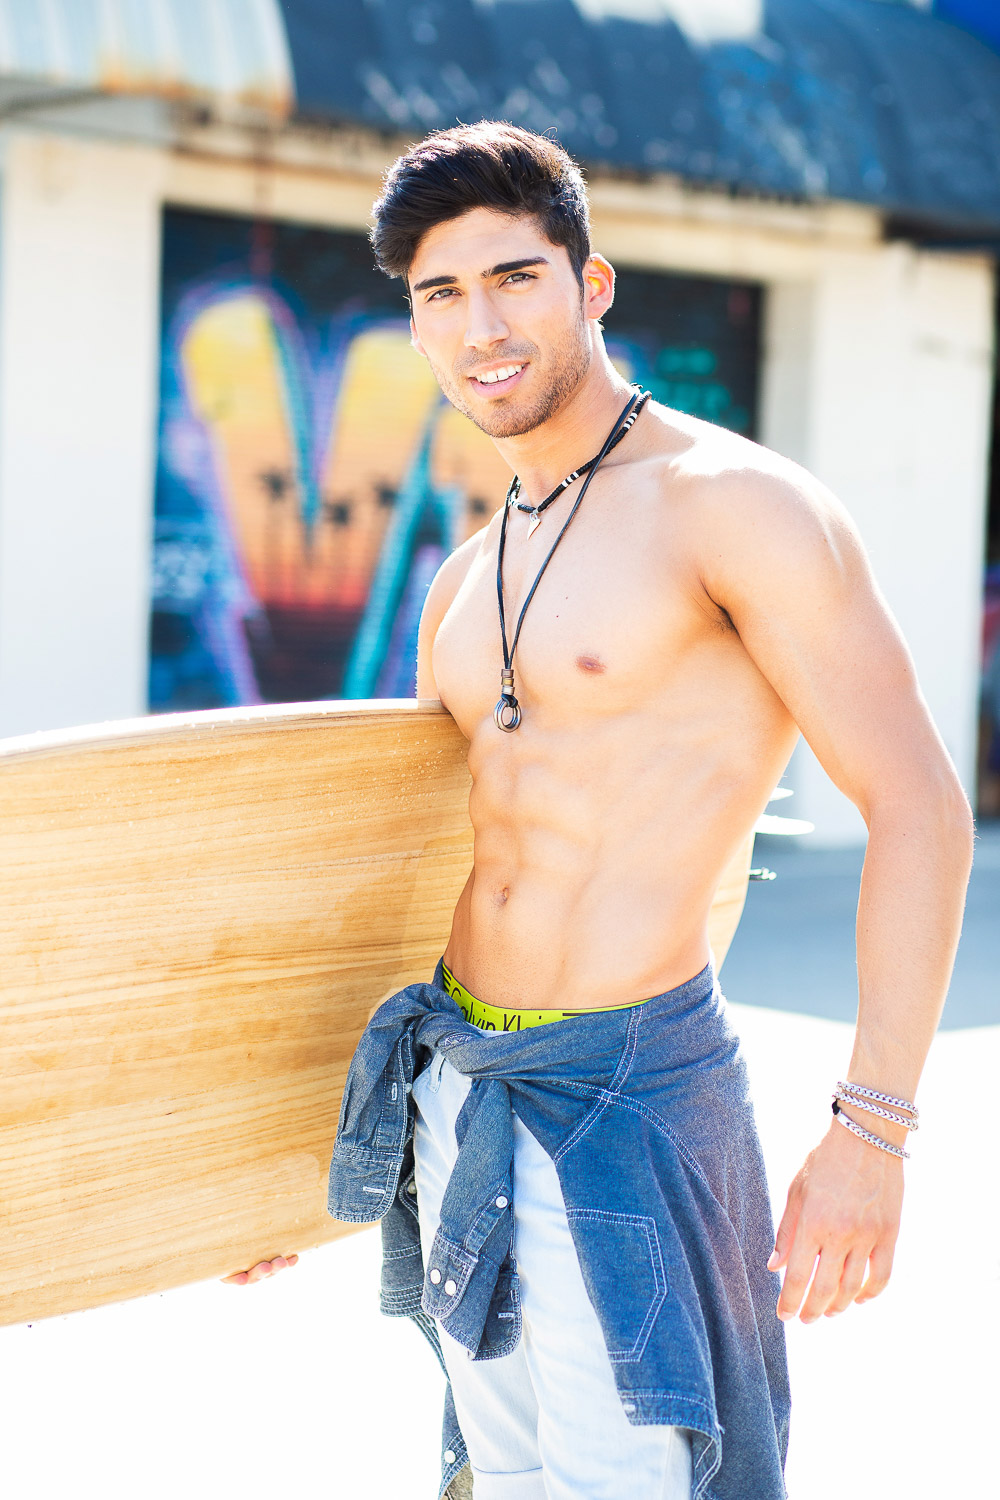 Shirtless Latino Male Model on Venice Boardwalk holding Surfboard